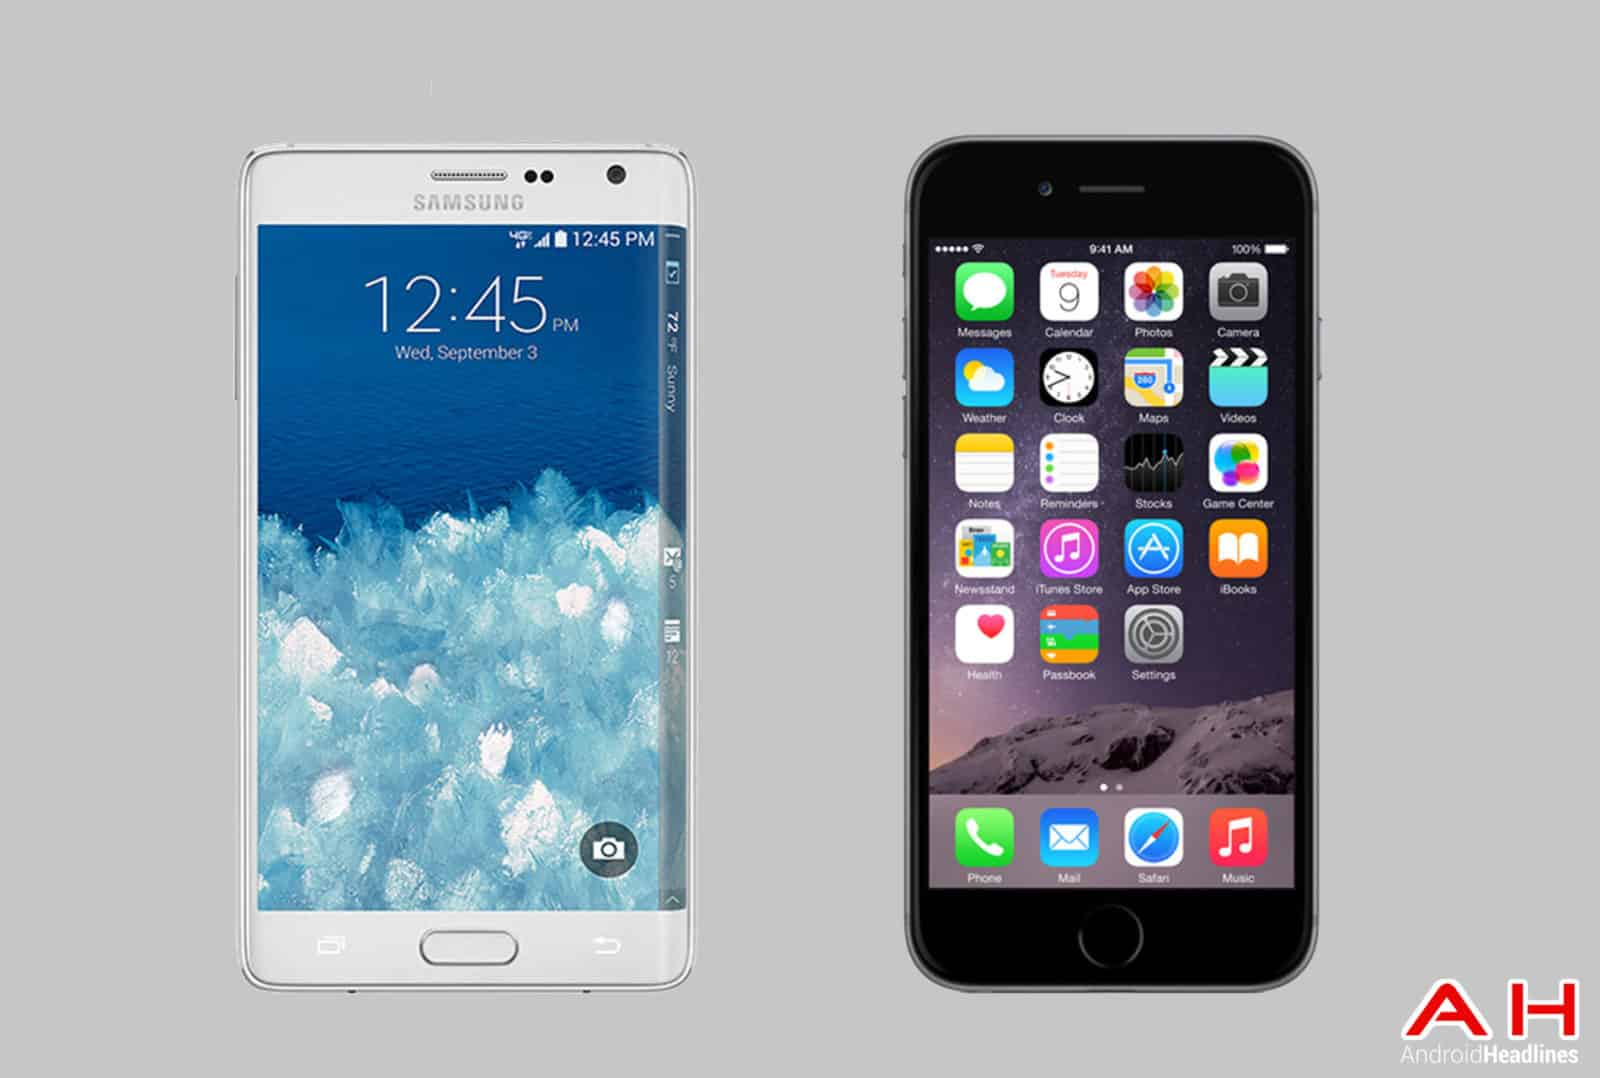 Mobile spy iphone 6s Plus vs galaxy s5 - Cell phone listening software piracy